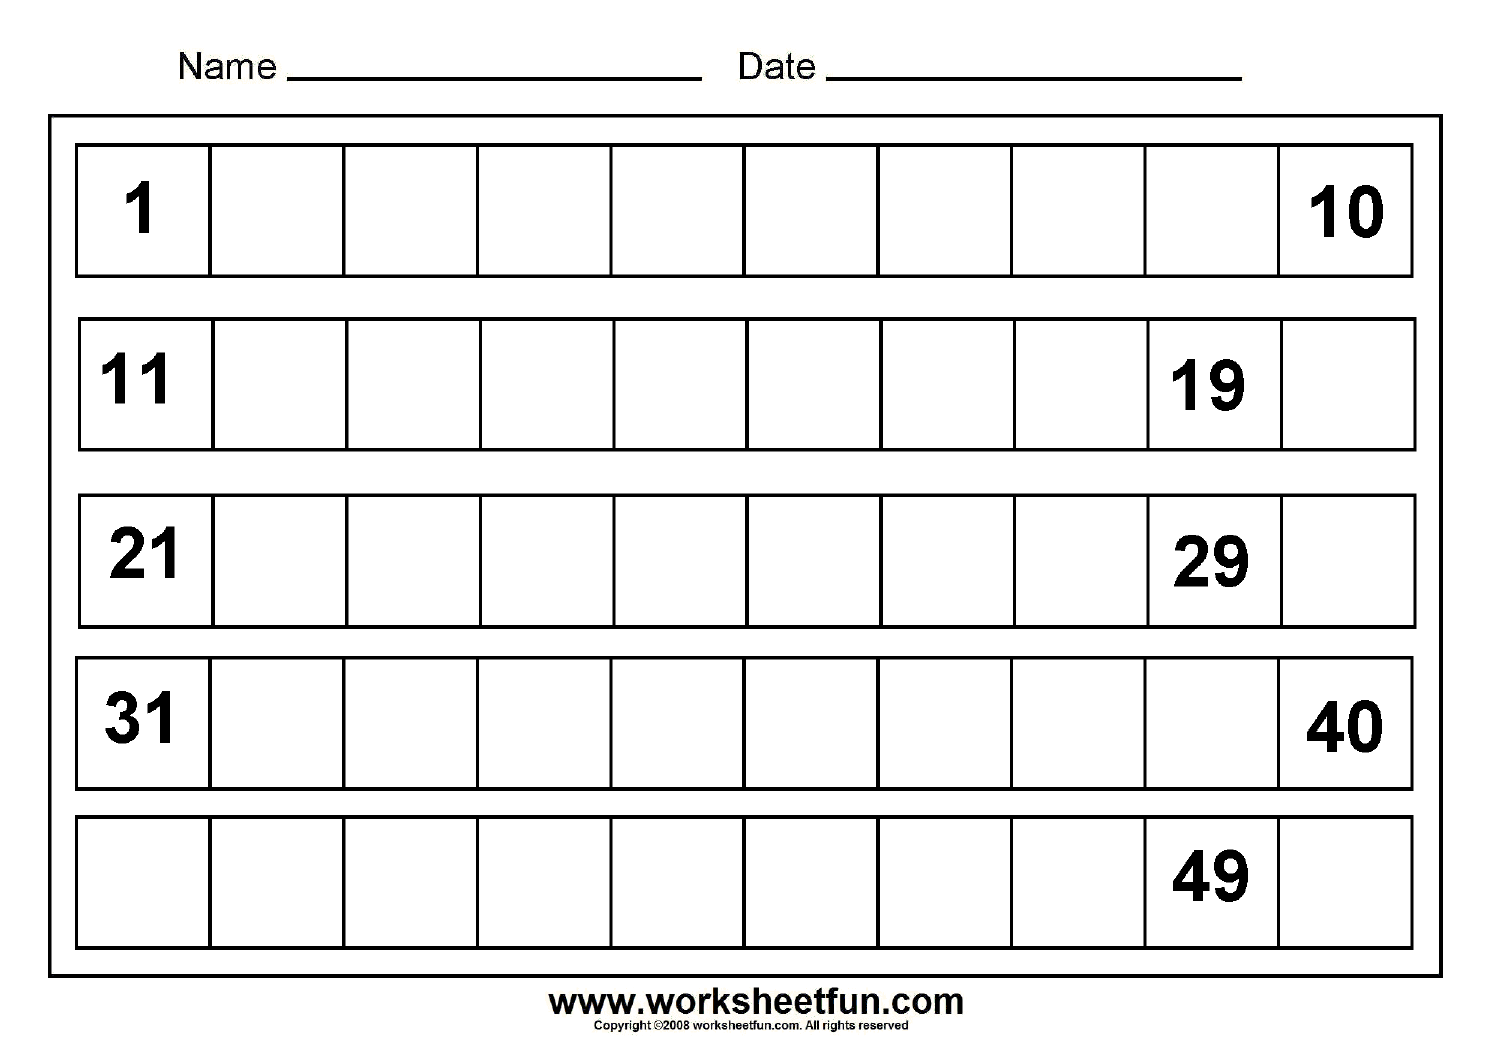 Worksheets Fill Missing Spaces With Numbers 1 -9 1000 images about numeros 1 al 50 on pinterest count preschool worksheets and johnny appleseed